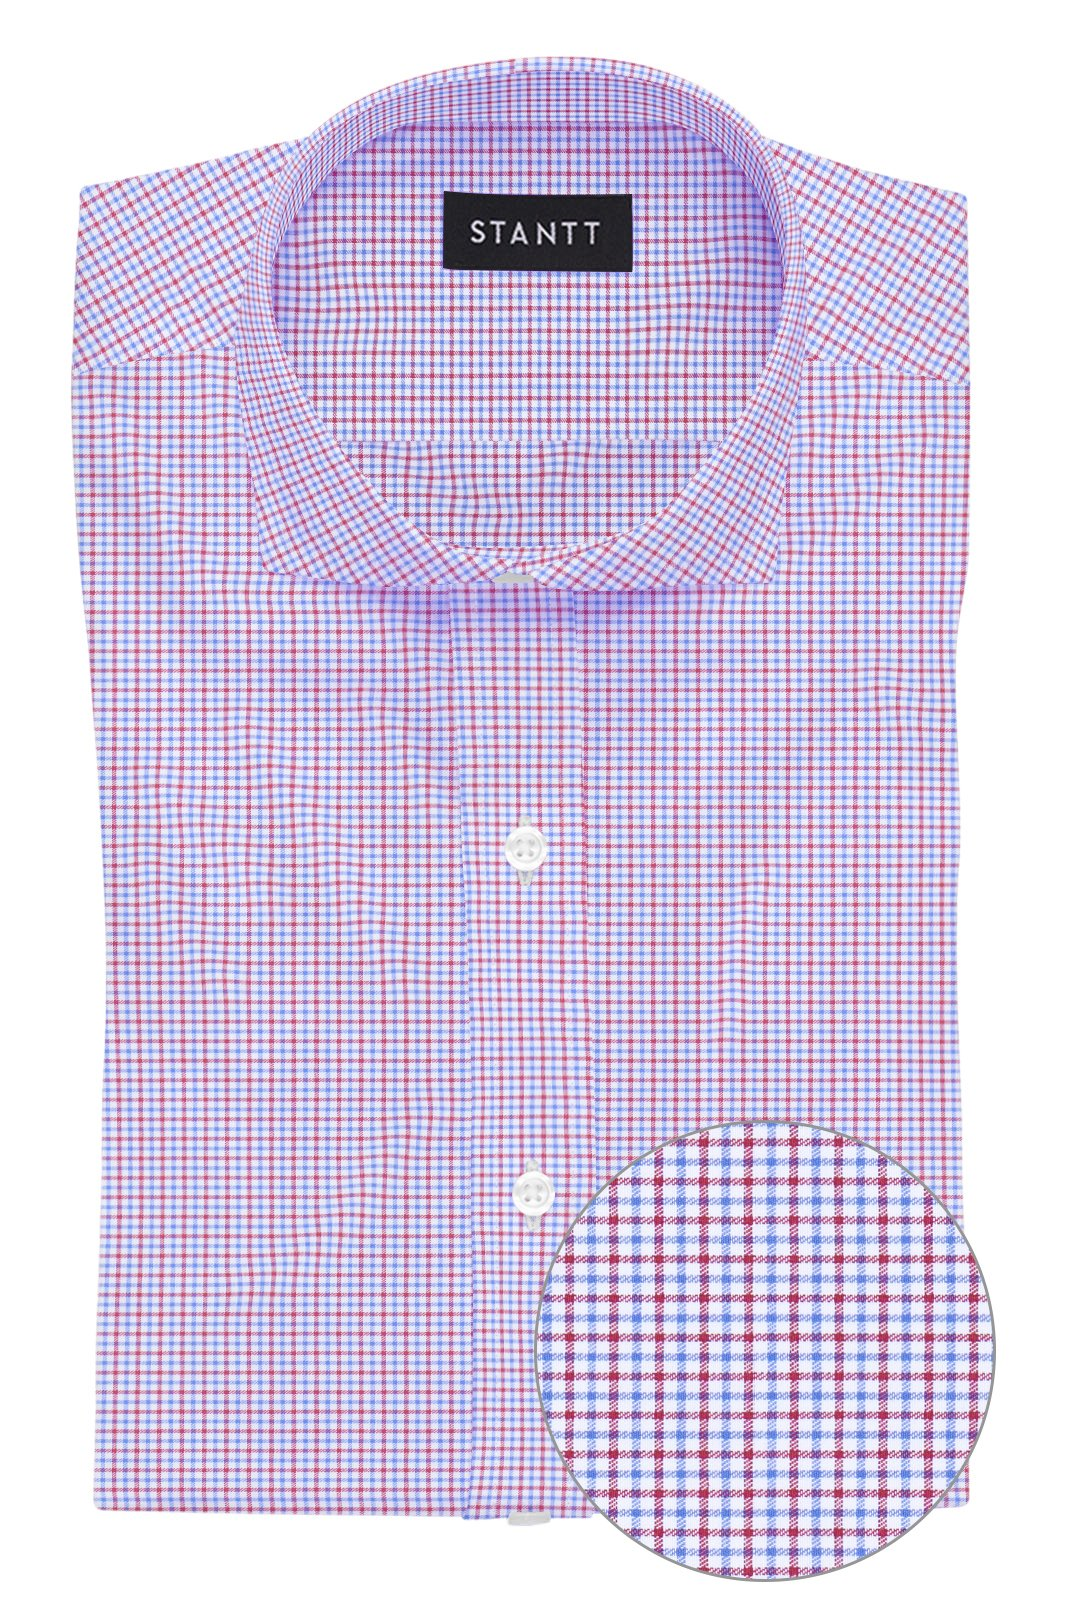 Red and Blue Mini Tattersall: Cutaway Collar, Barrel Cuff